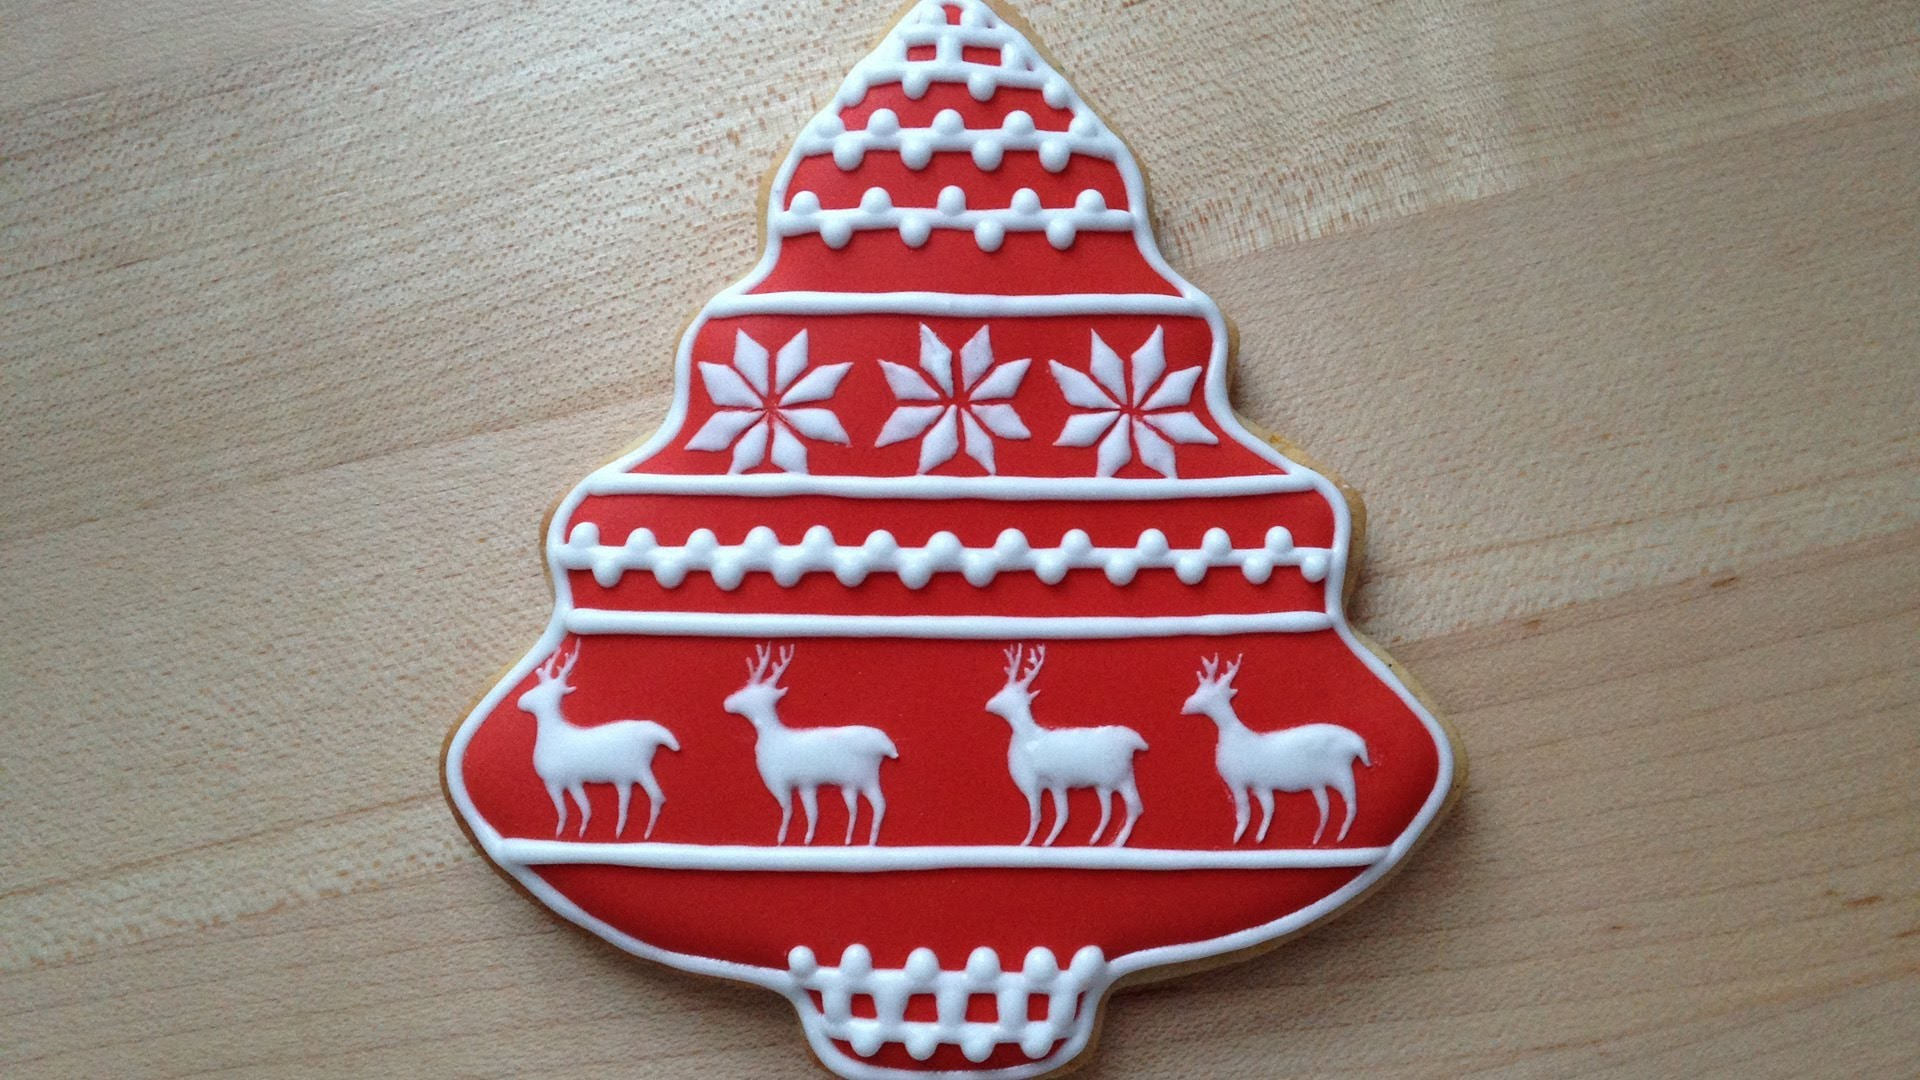 How To Decorate A Christmas Cookie - Reindeer Pattern